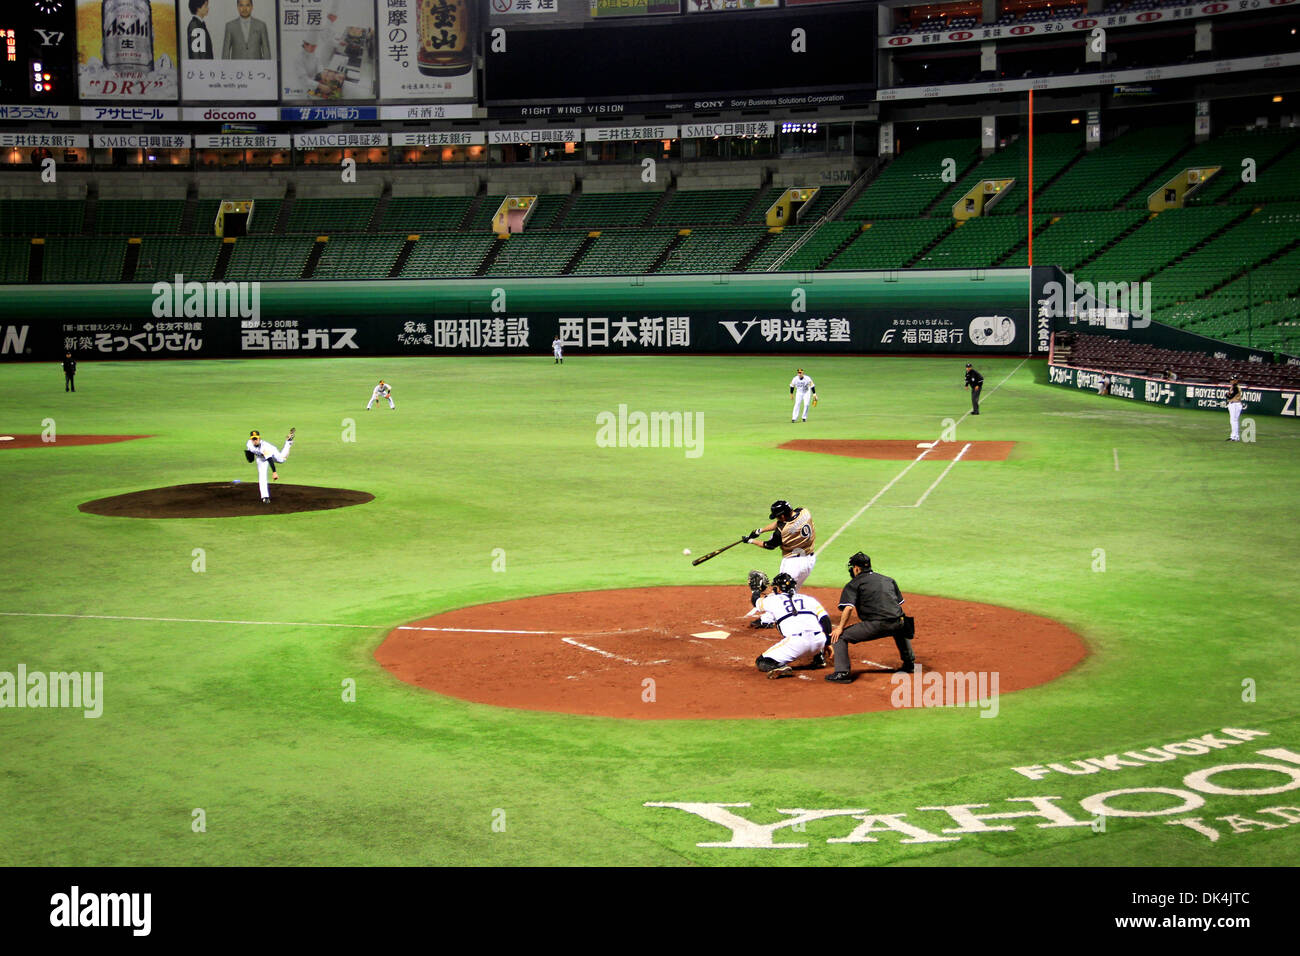 Japan Professional Baseball Imágenes De Stock   Japan Professional ... 9a86e54d52e